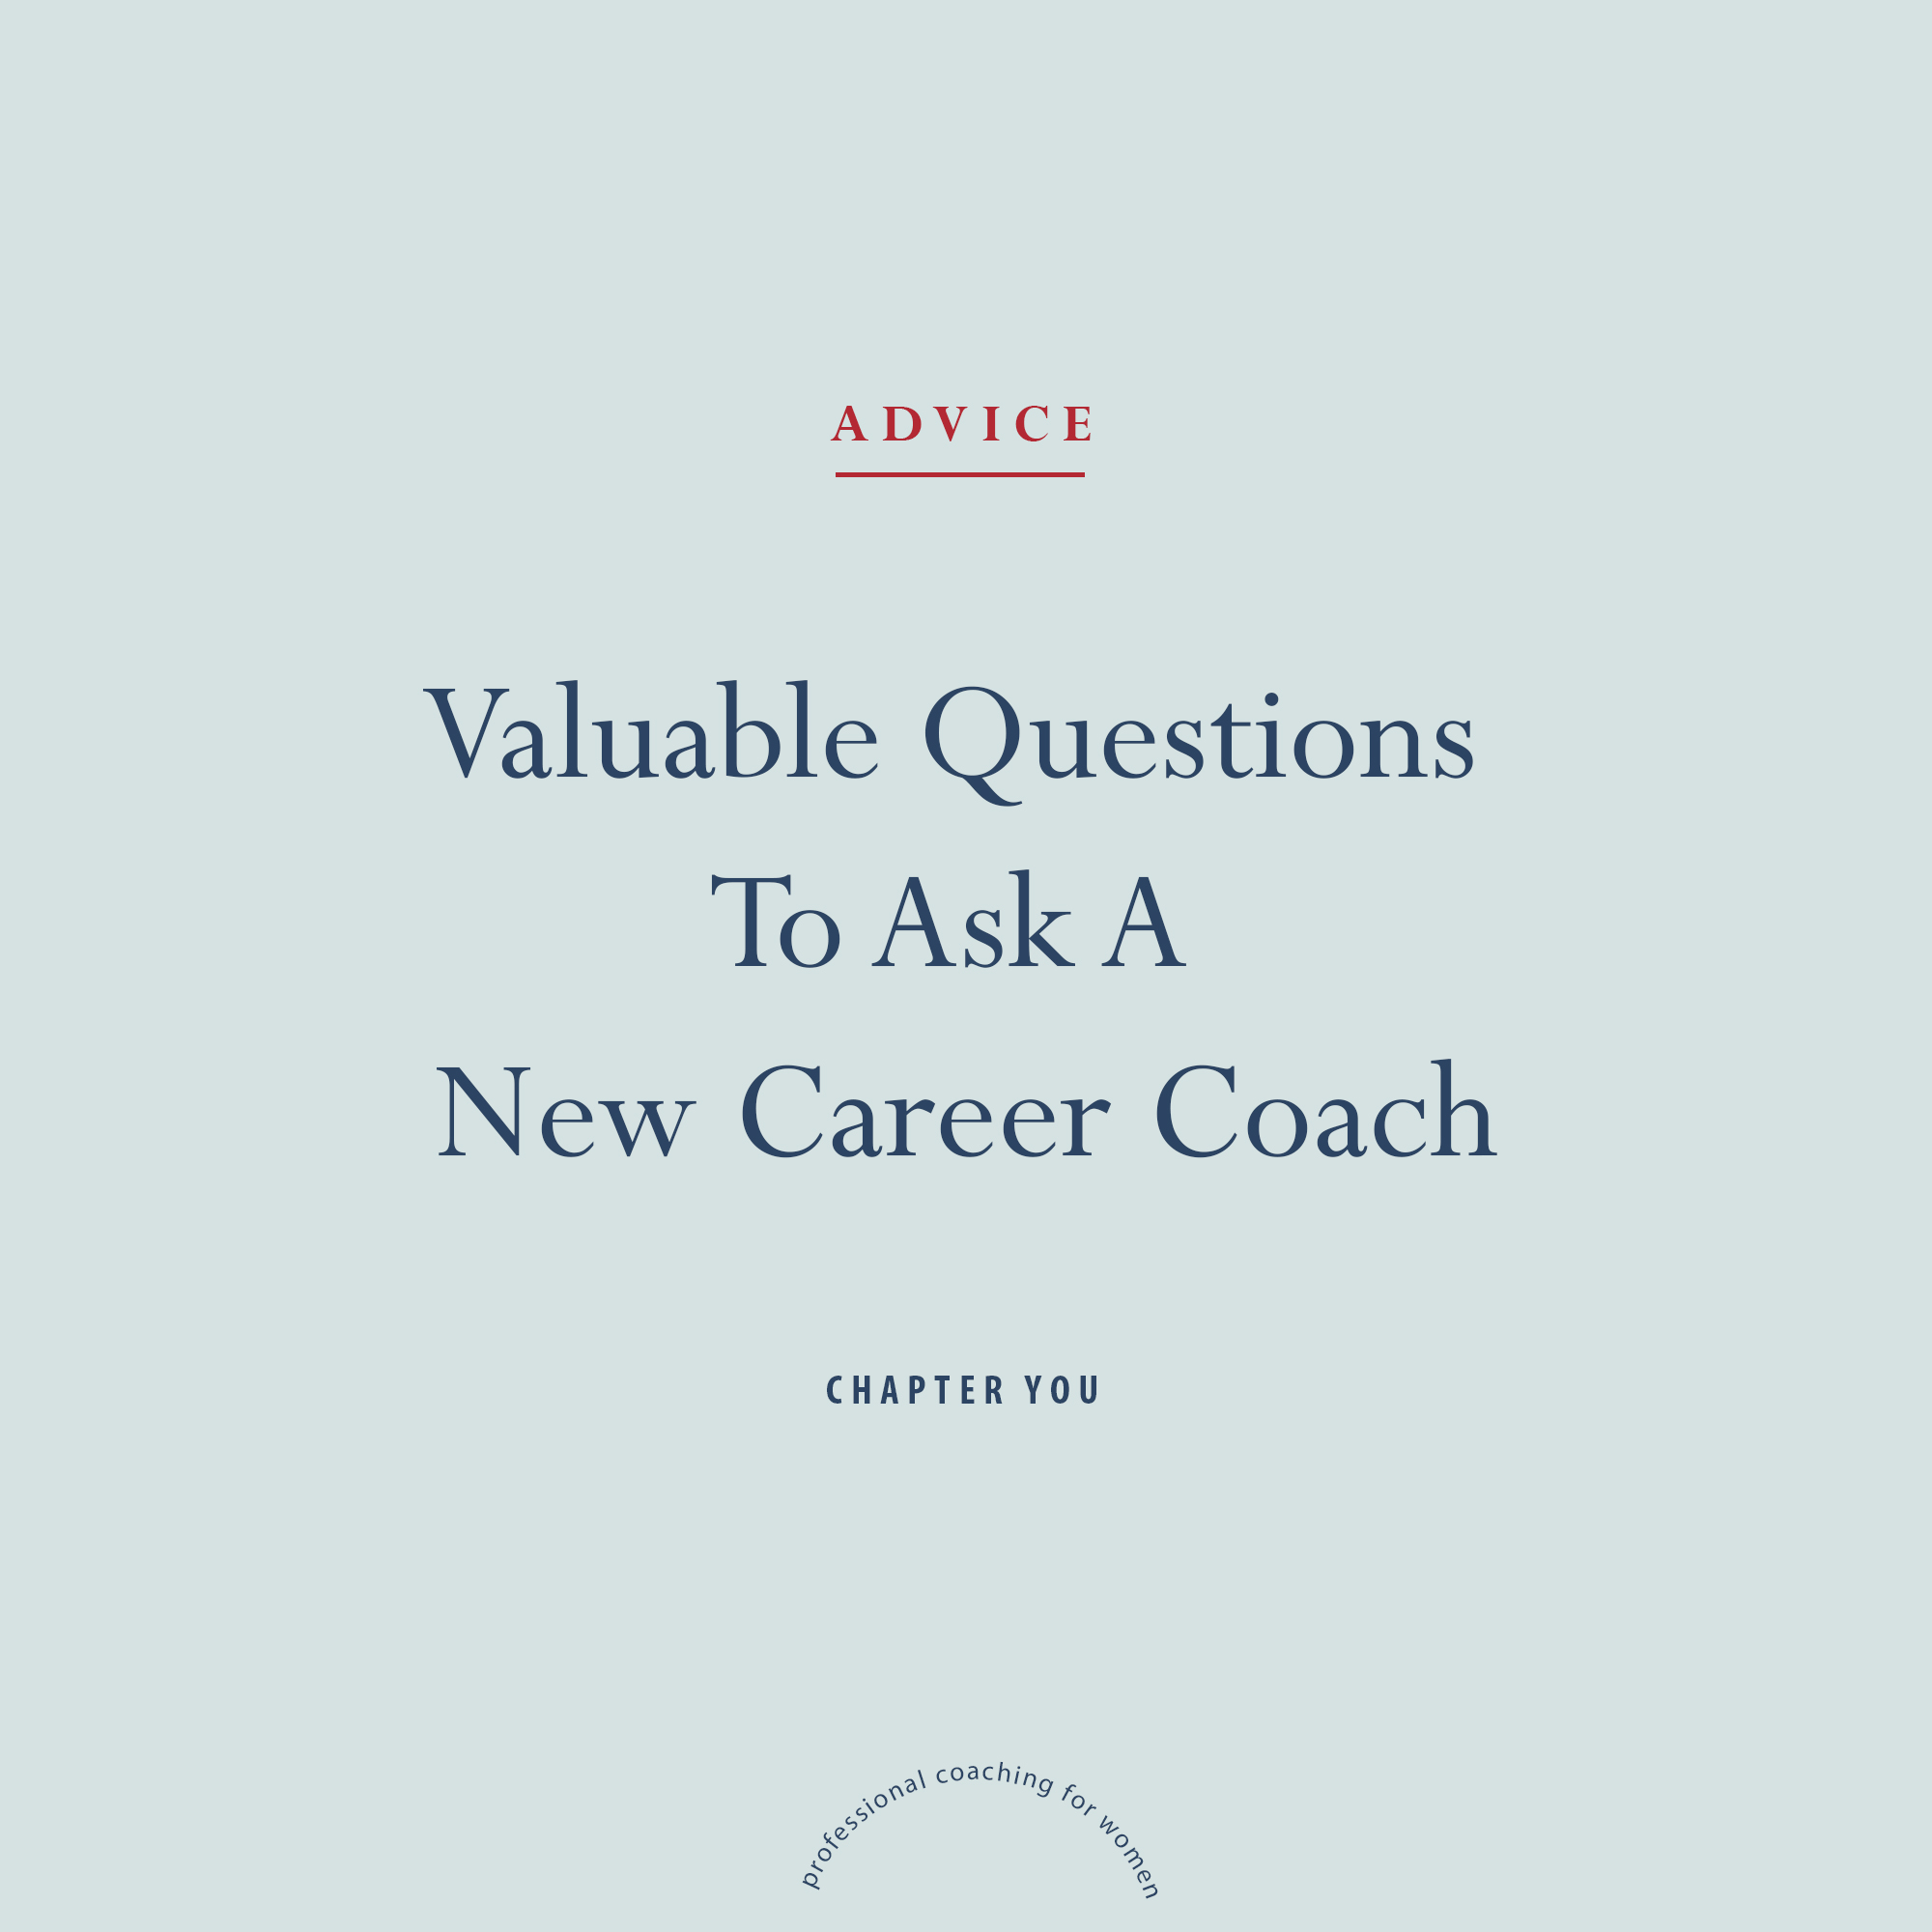 Valuable Questions to Ask A New Career Coach.jpg